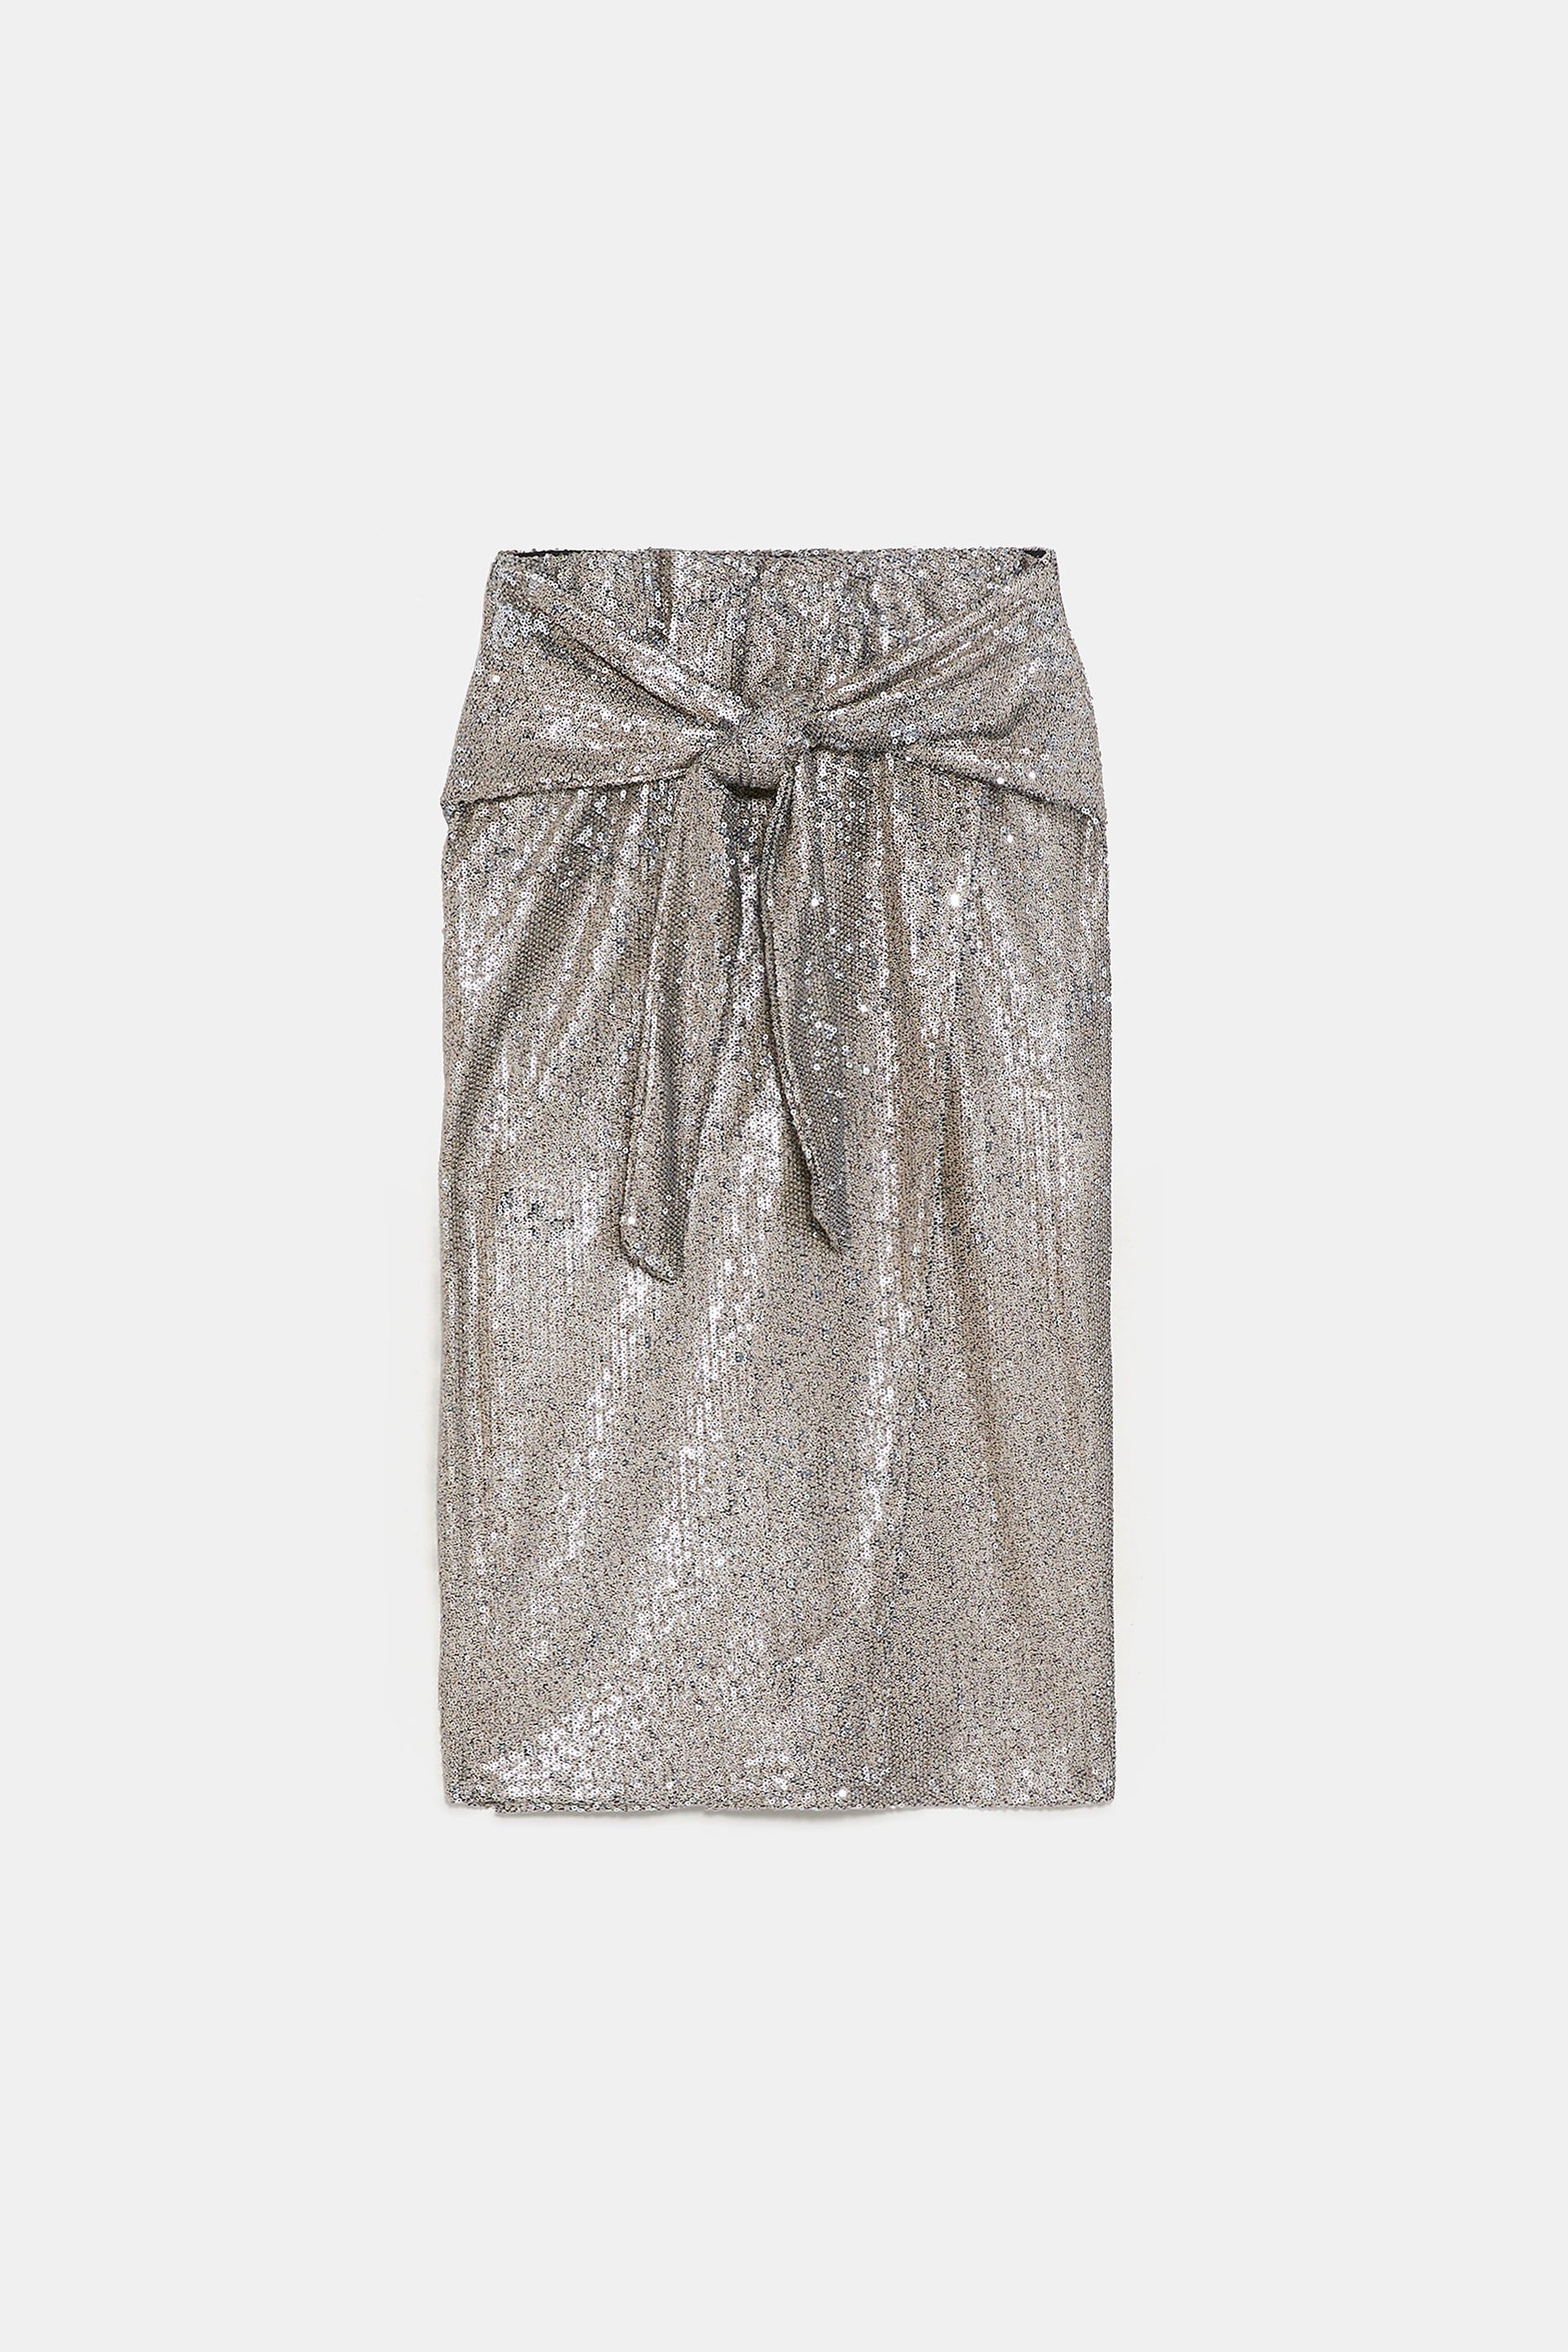 cfa4edb9f6 Image 8 of KNOTTED SEQUIN SKIRT from Zara